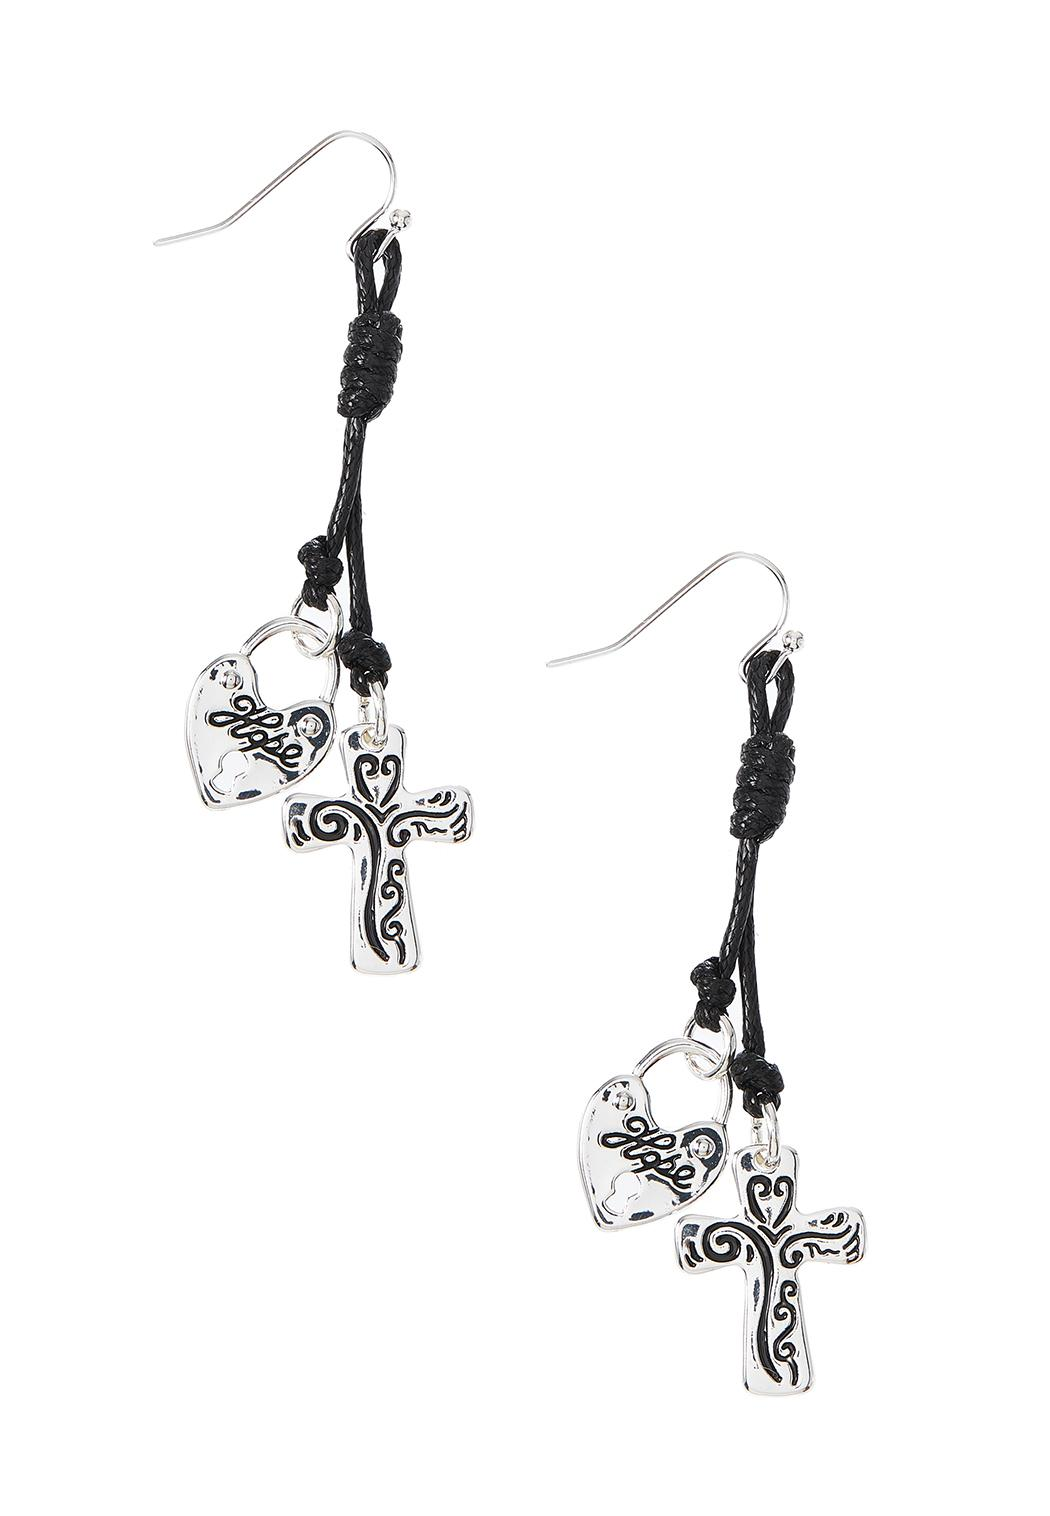 Inspirational Cord Cross Earrings